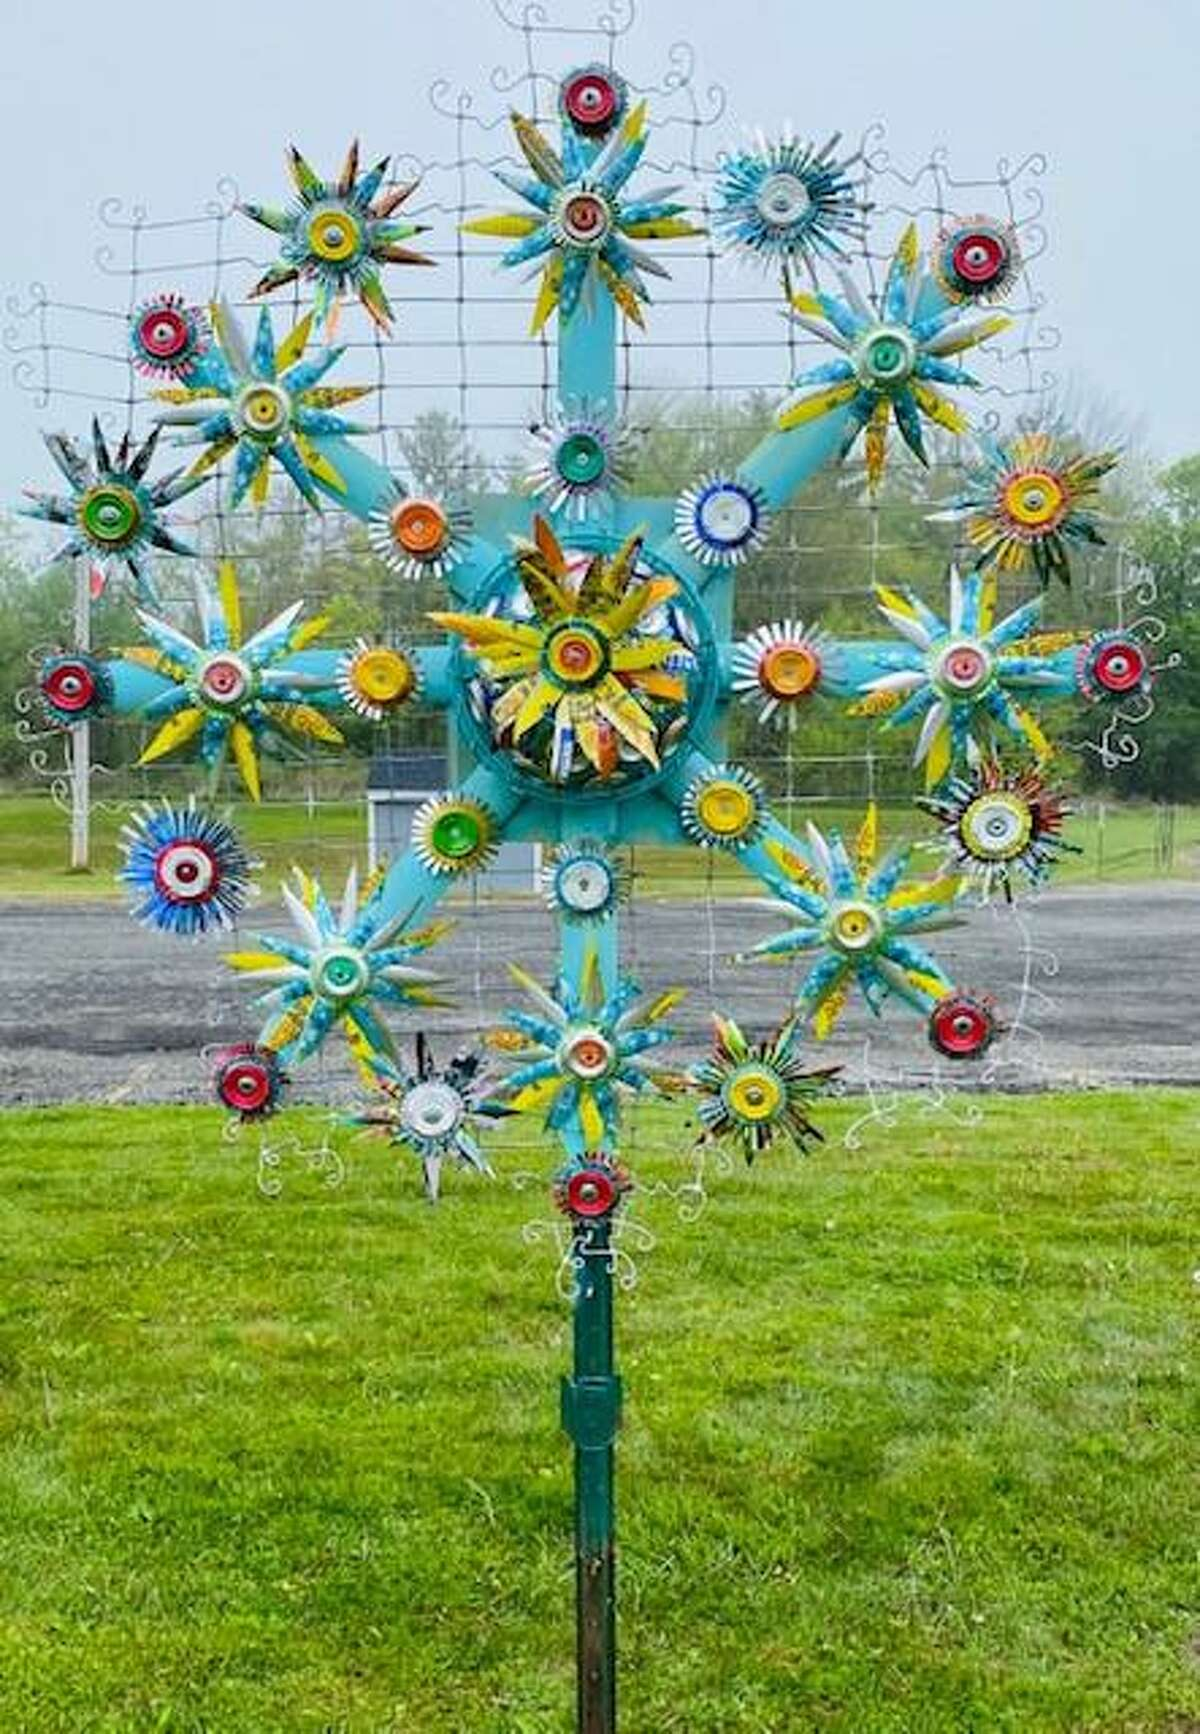 """The Goshen Business Circle, in partnership with Region 6, is aunching the Goshen Flower Garden Project to stir up some creativity and fun in this rather challenging time at home. This results from the formation of the GBC'S newly established Arts committee and its first project... LOLA, """"Love our Local Arts""""."""